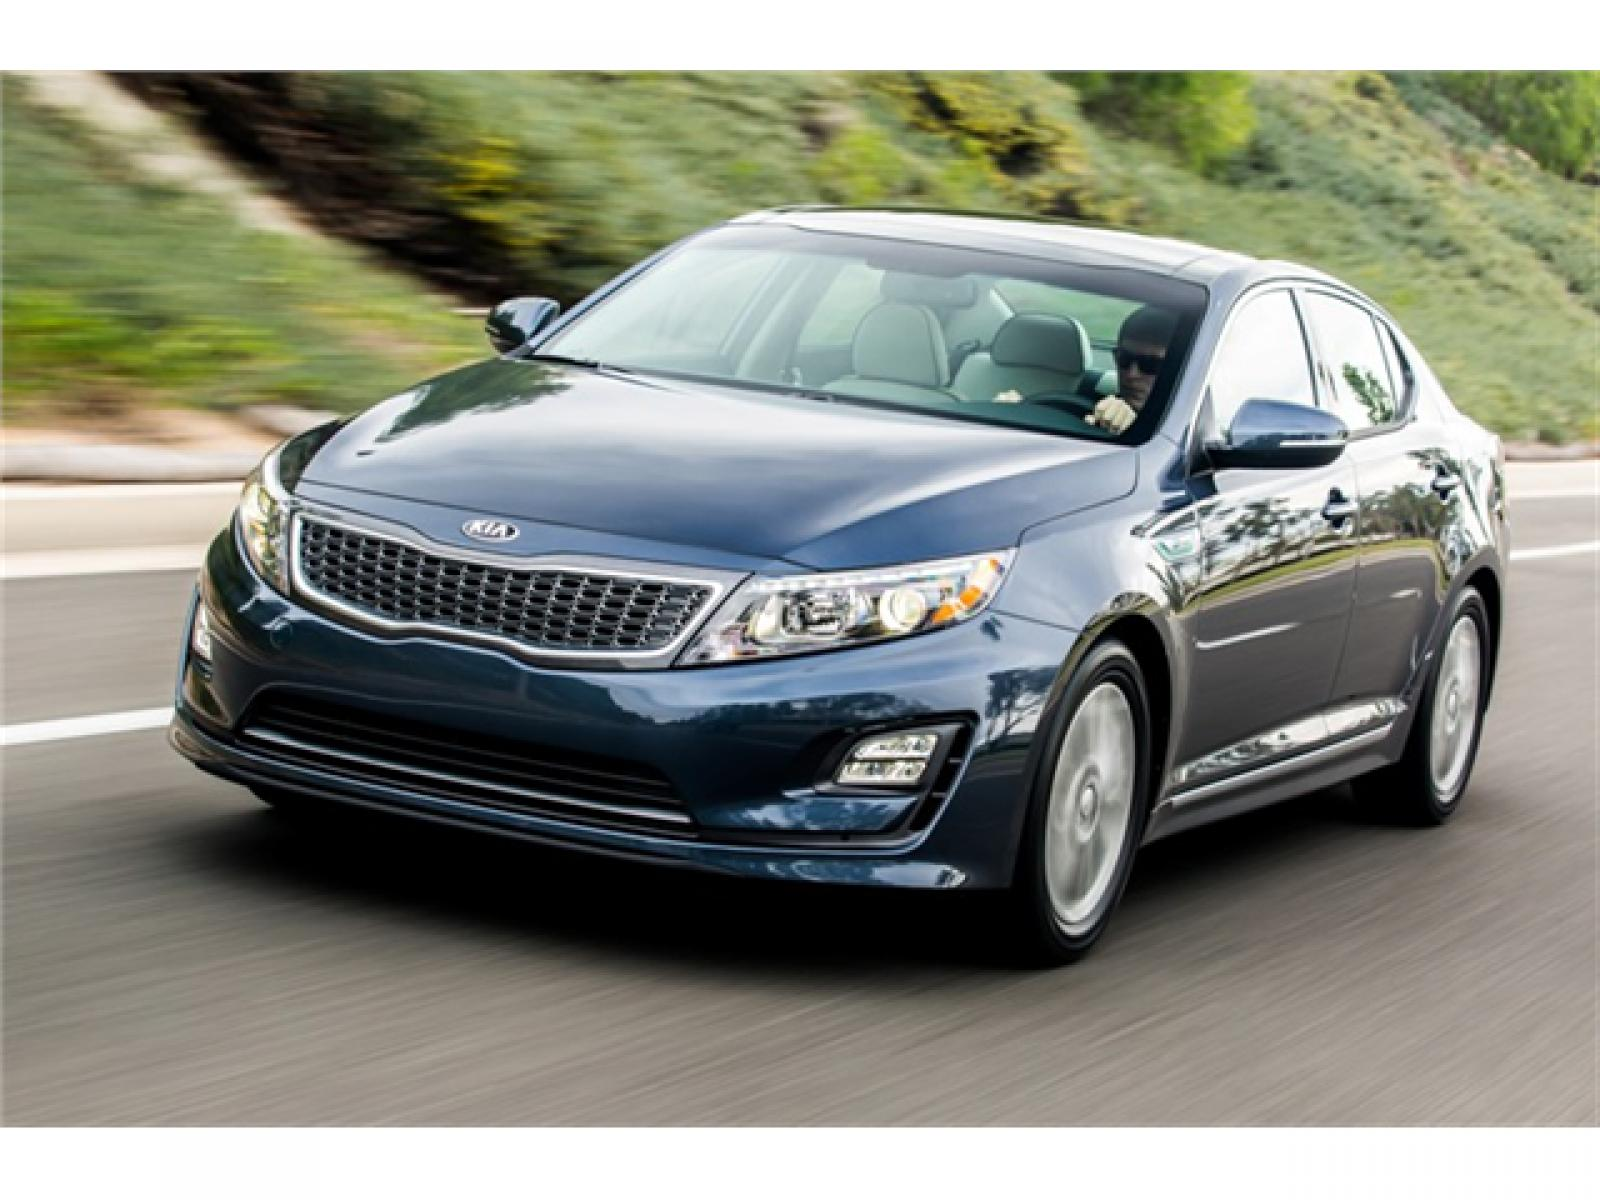 new date kia cars release auto price design engine review and optima